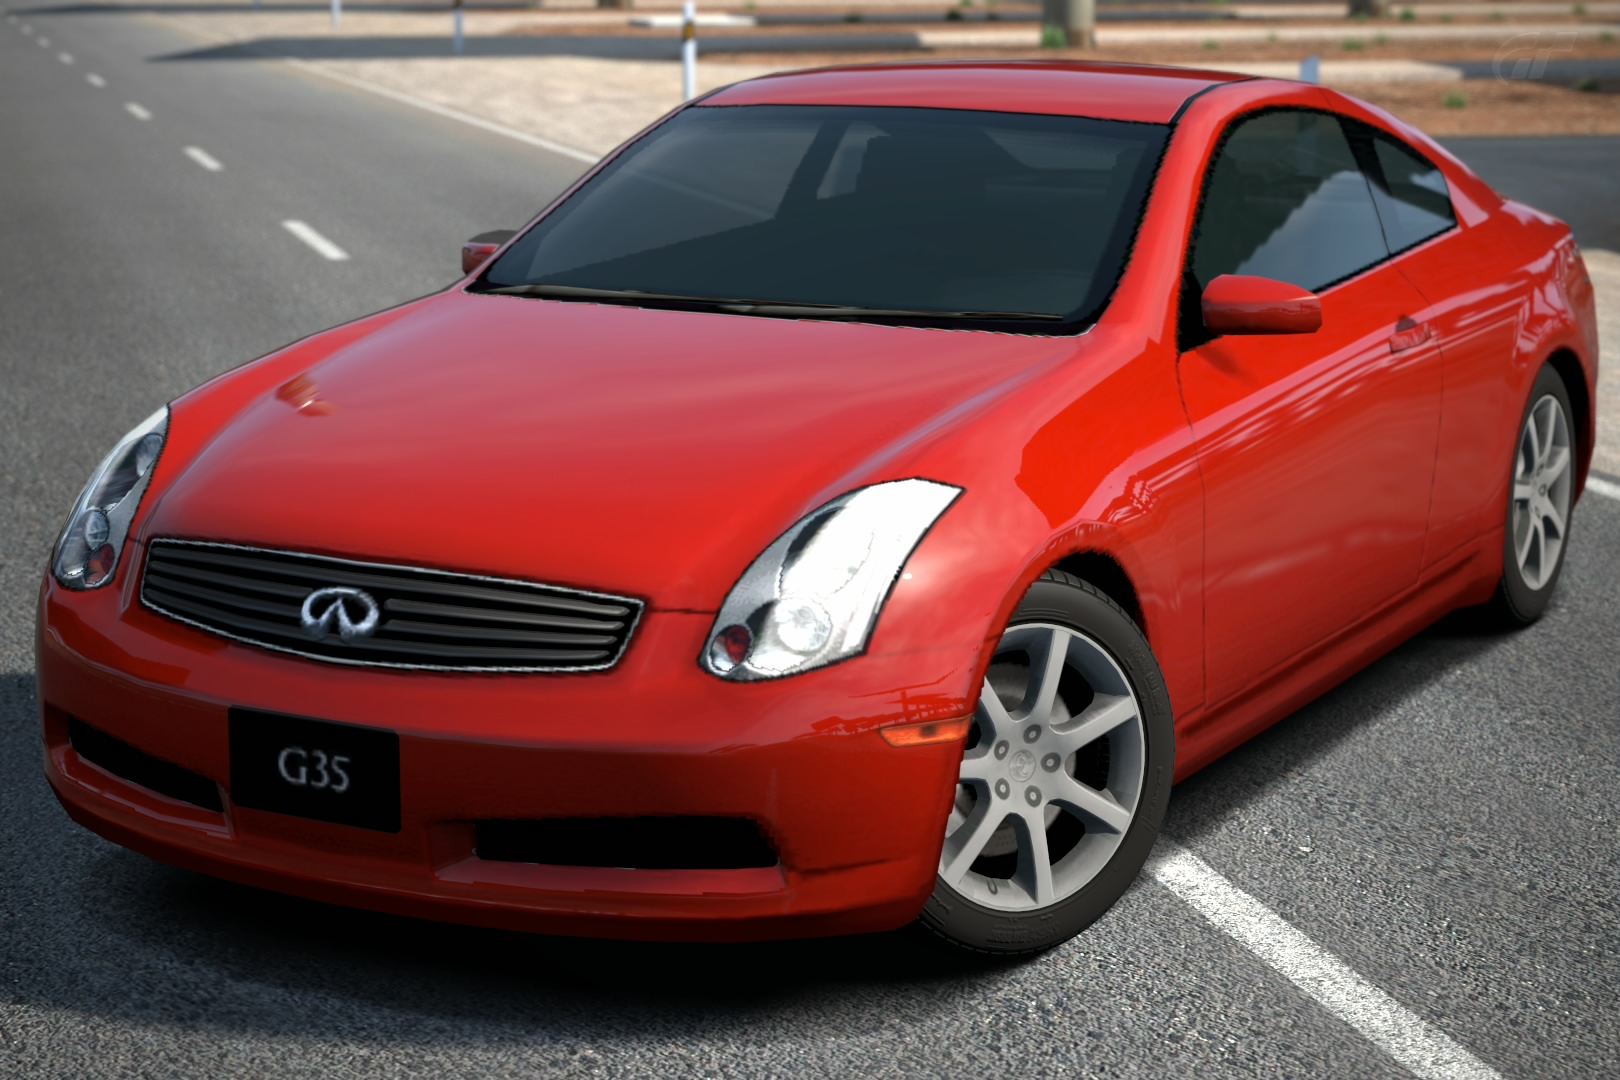 Infiniti G35 COUPE \'03 | Gran Turismo Wiki | FANDOM powered by Wikia